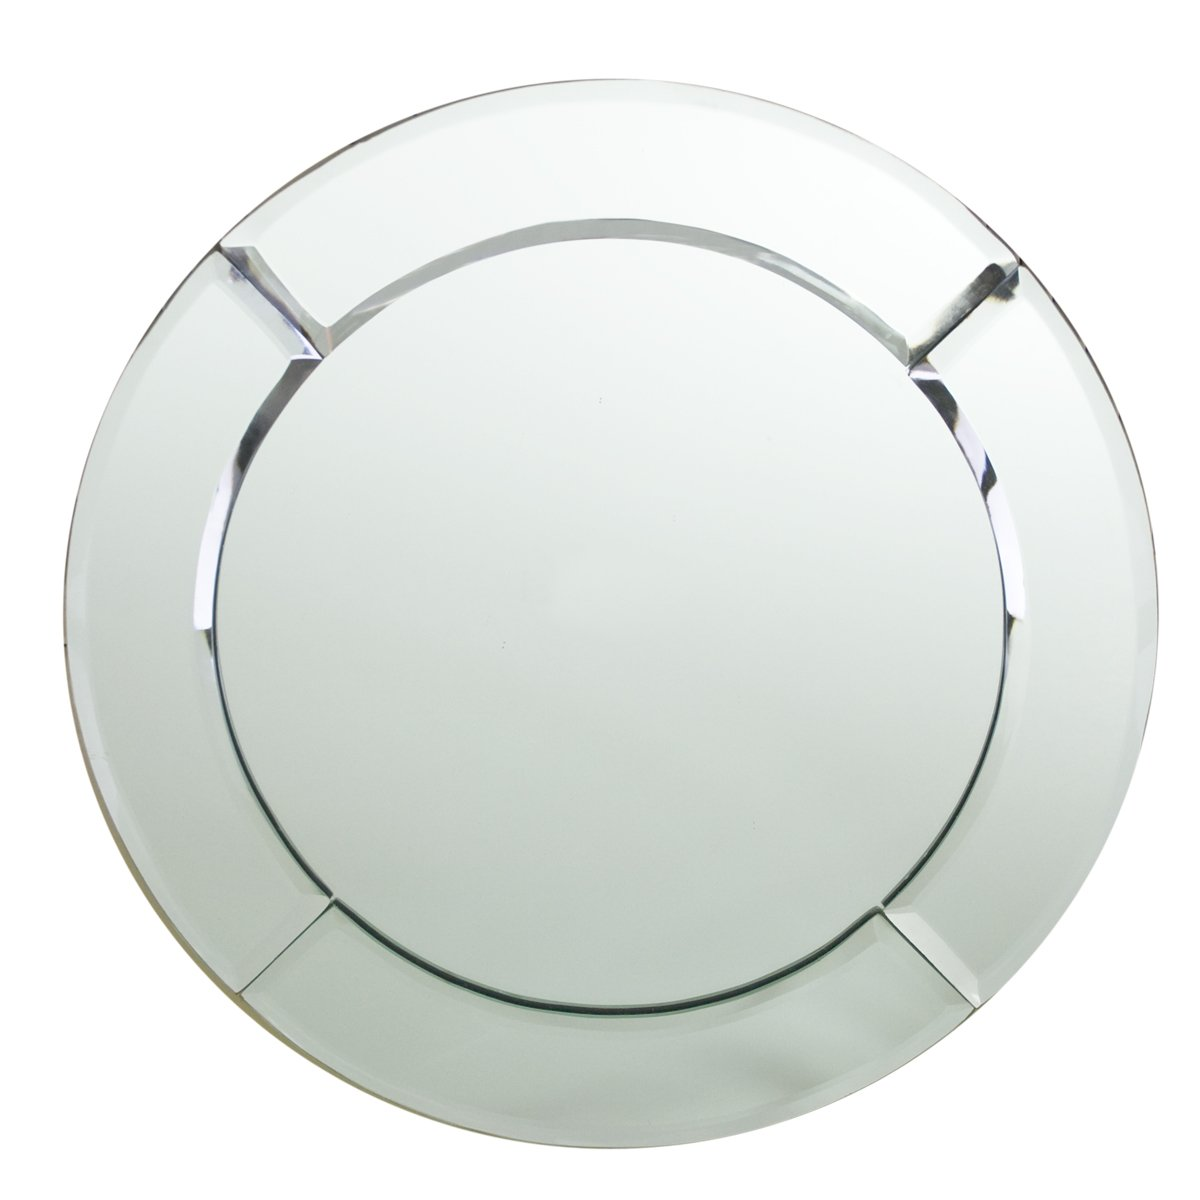 Chargeit by Jay Mirror Round Chargers, 2-Pack Jay Imports 1330051